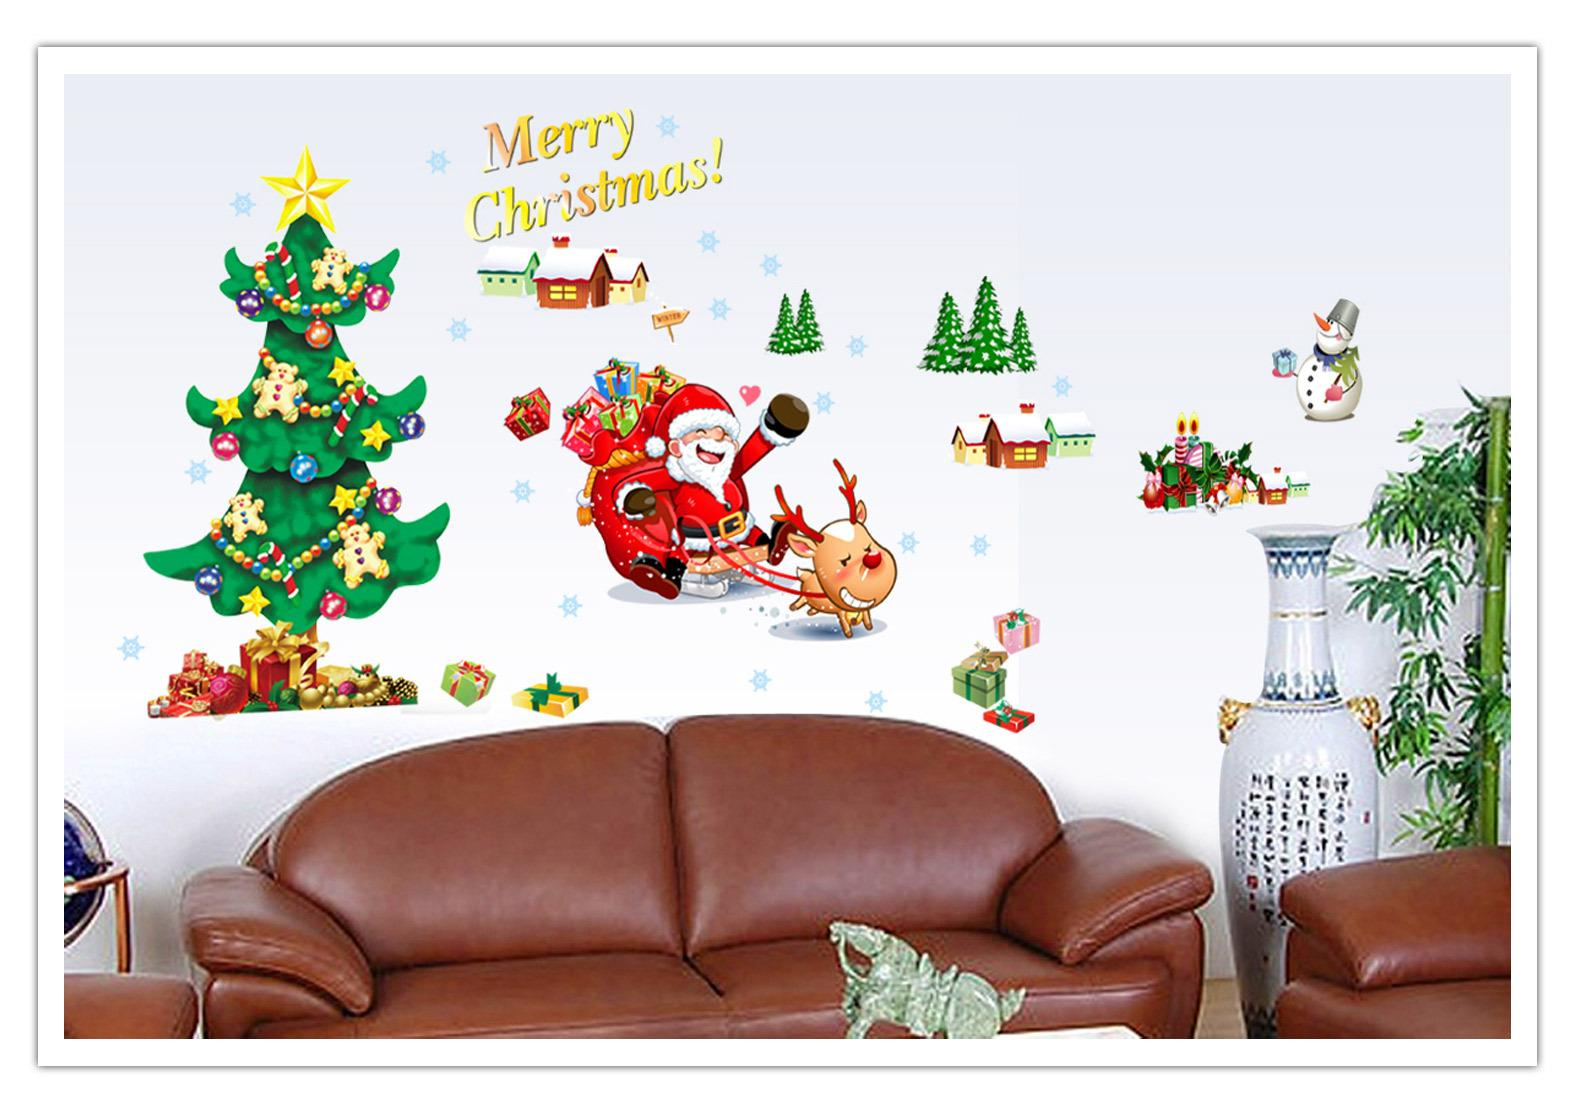 100 tree murals for walls home decoration forest tree dream tree murals for walls hot sale merry christmas xmas tree santa claus snowman wall decal